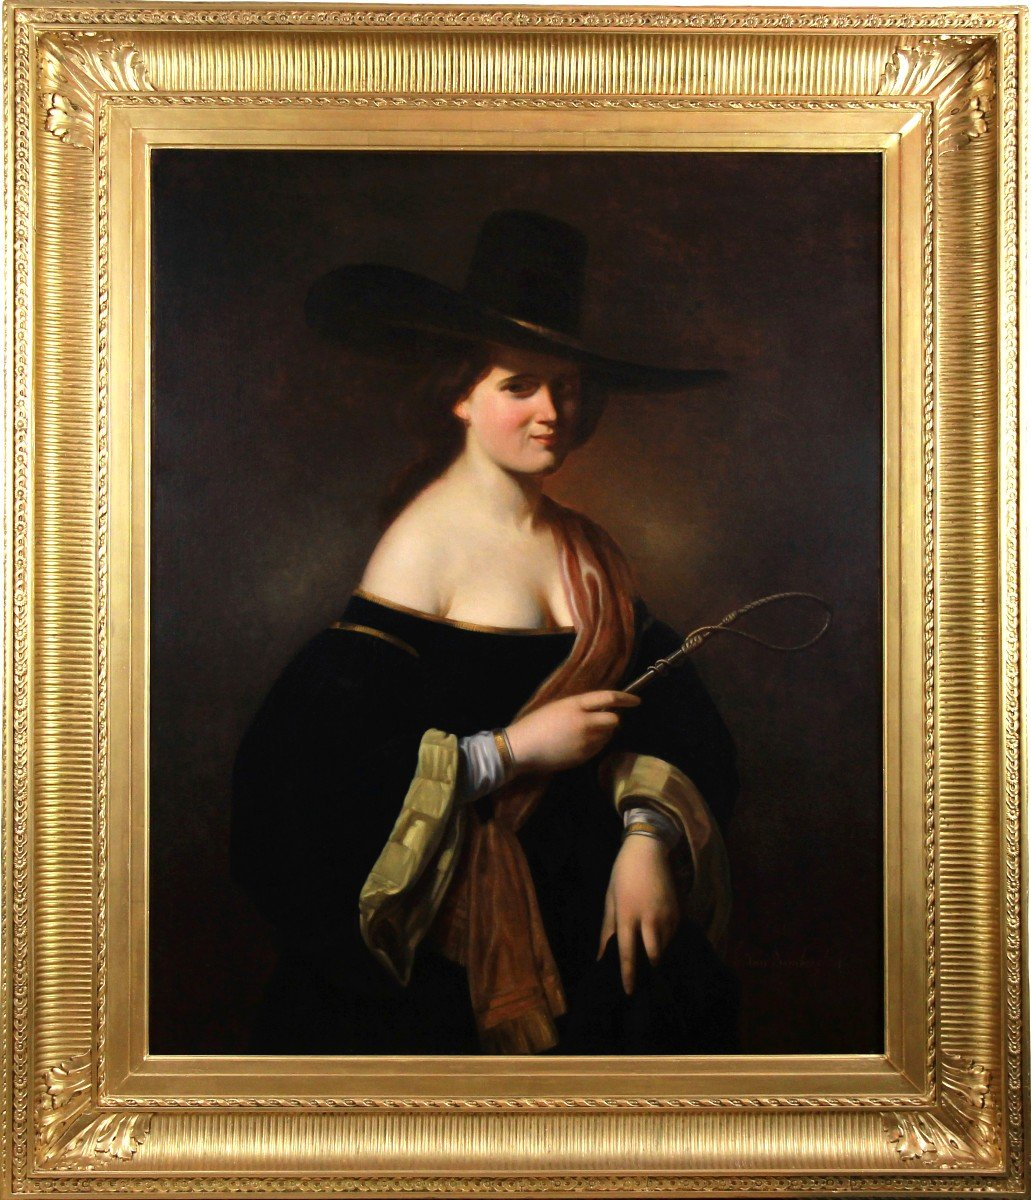 Oil On Canvas, Portrait Of A Woman With A  Hat 19th